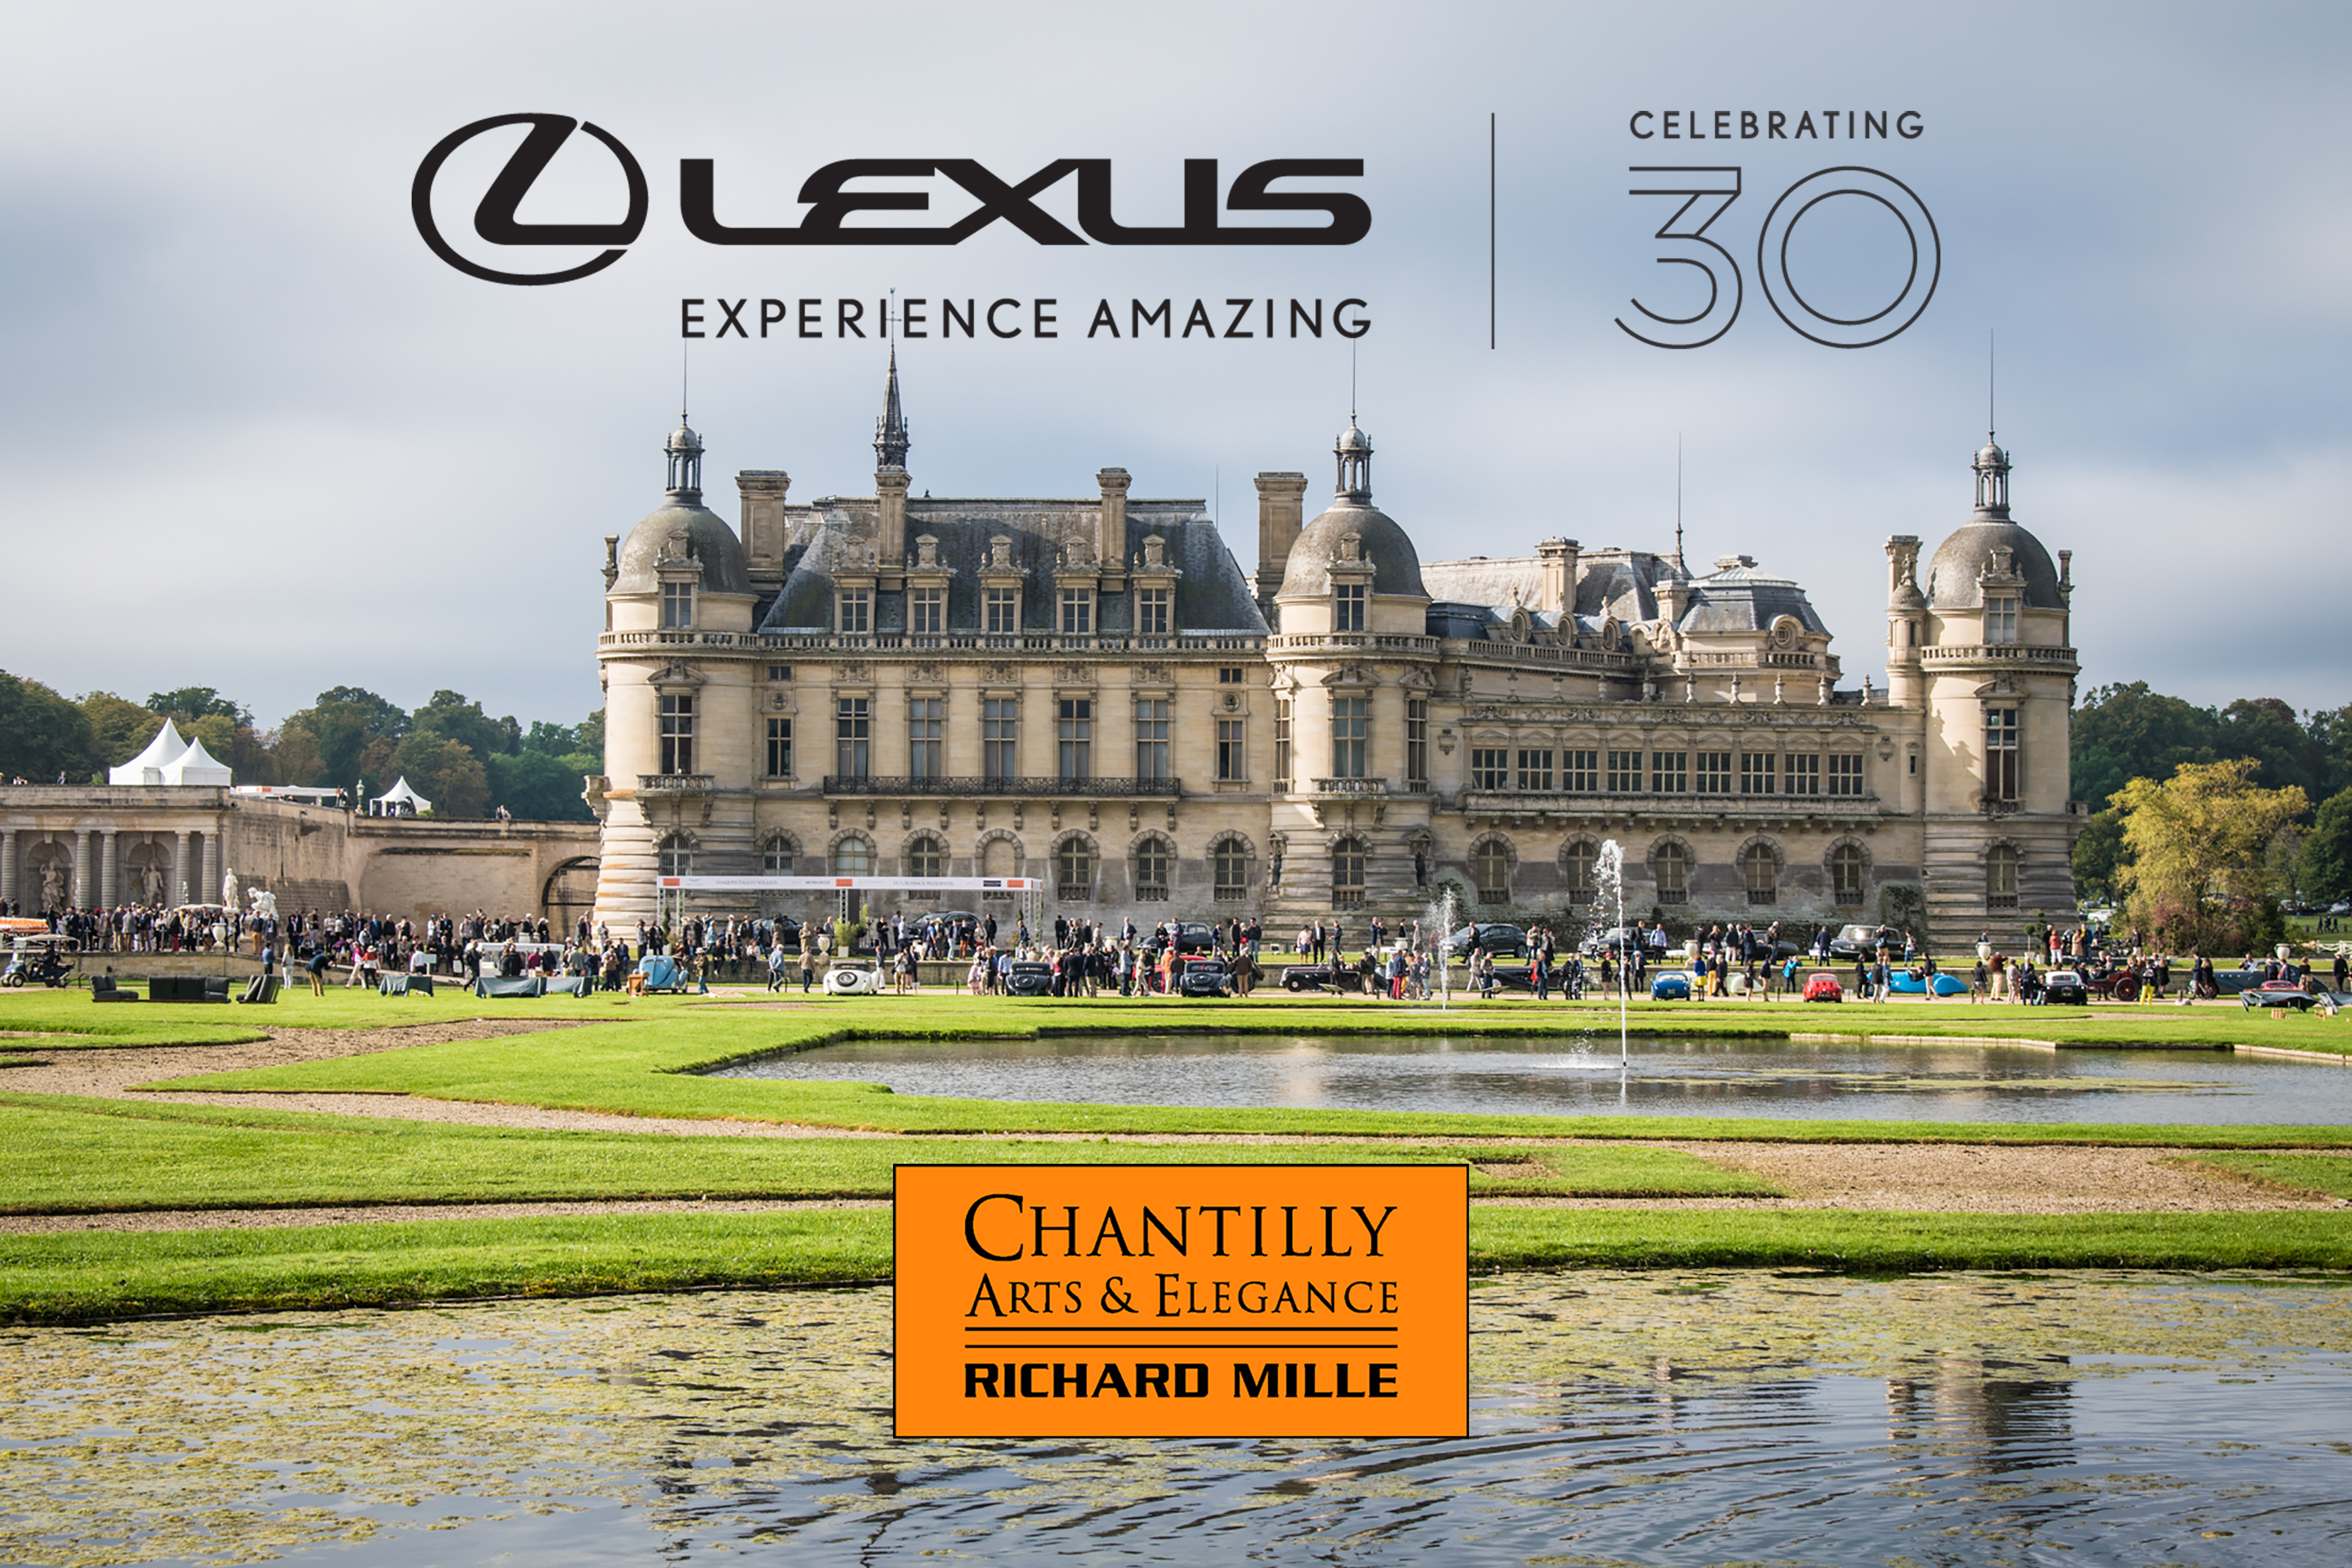 Lexus Celebrates its 30th Anniversary Hero image